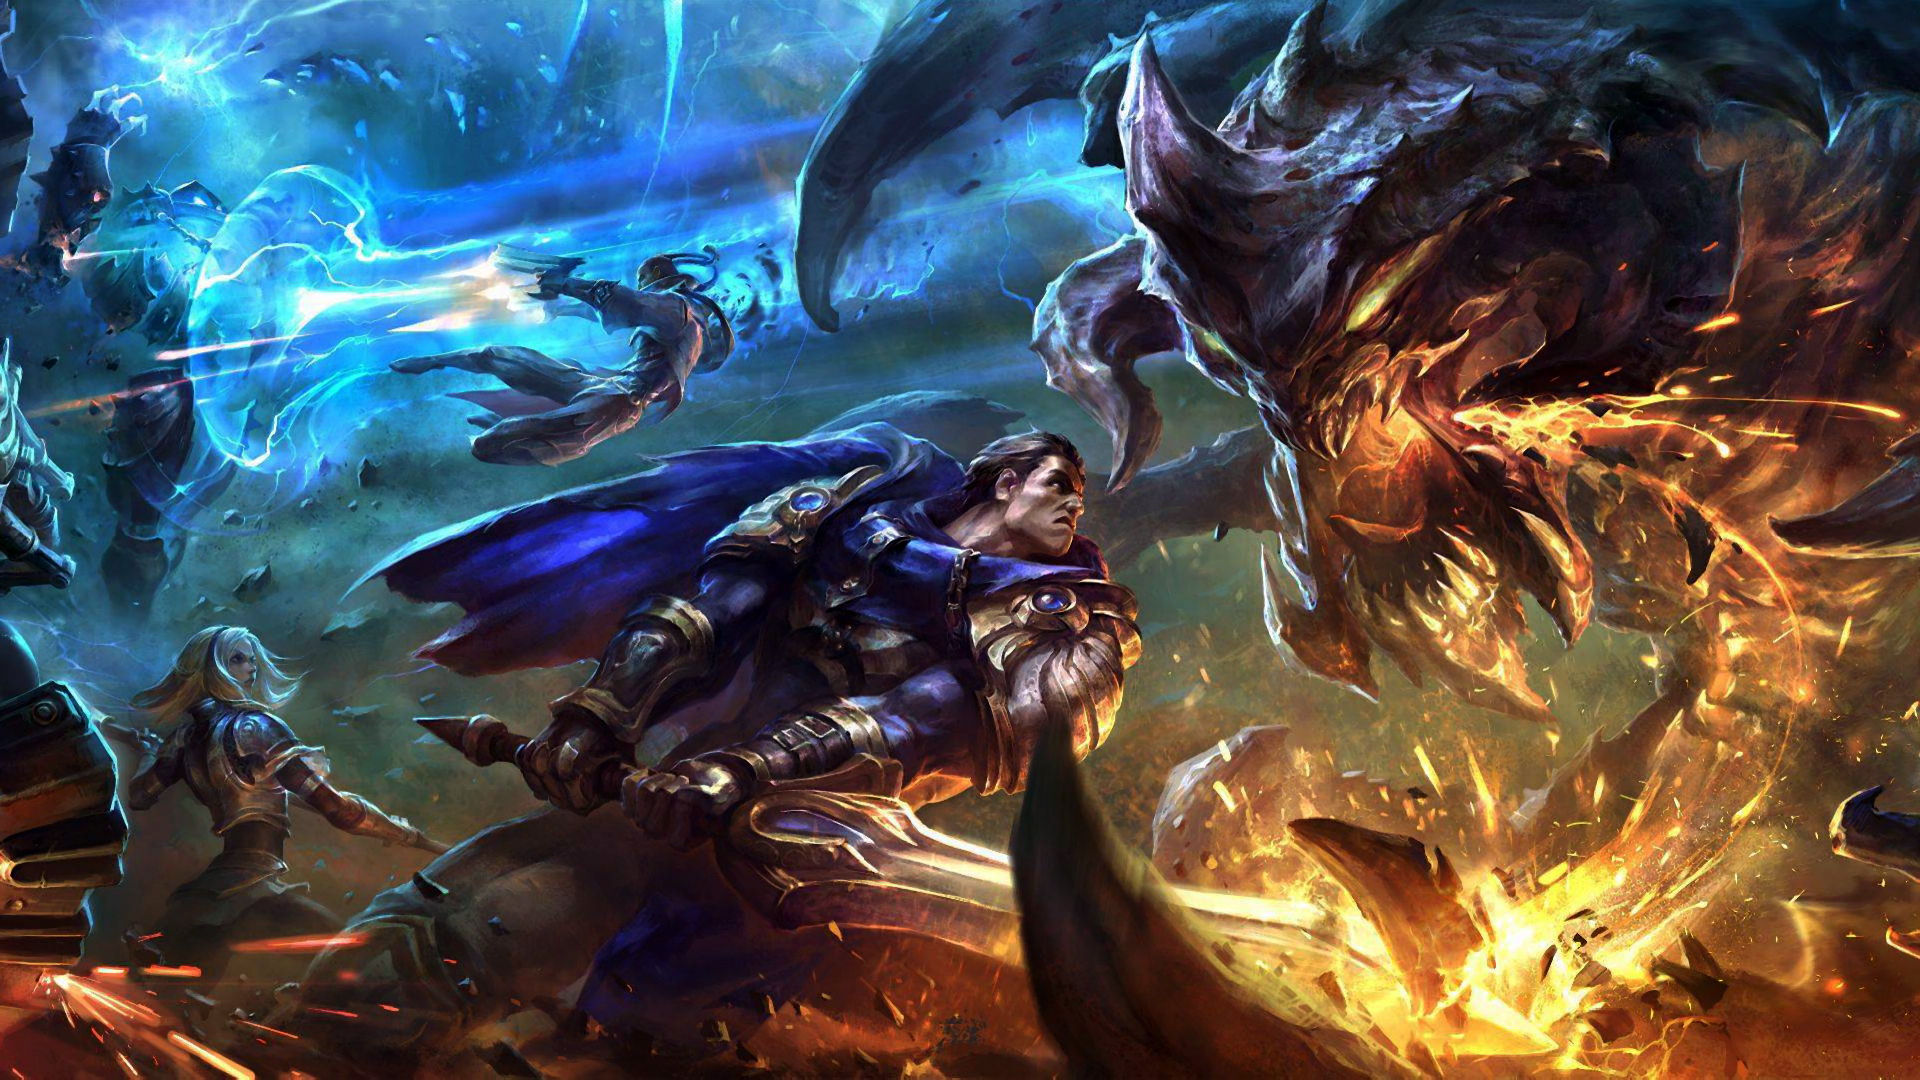 Baron-Fight-League-Of-Legends-Wallpapers-HD-1920x1080